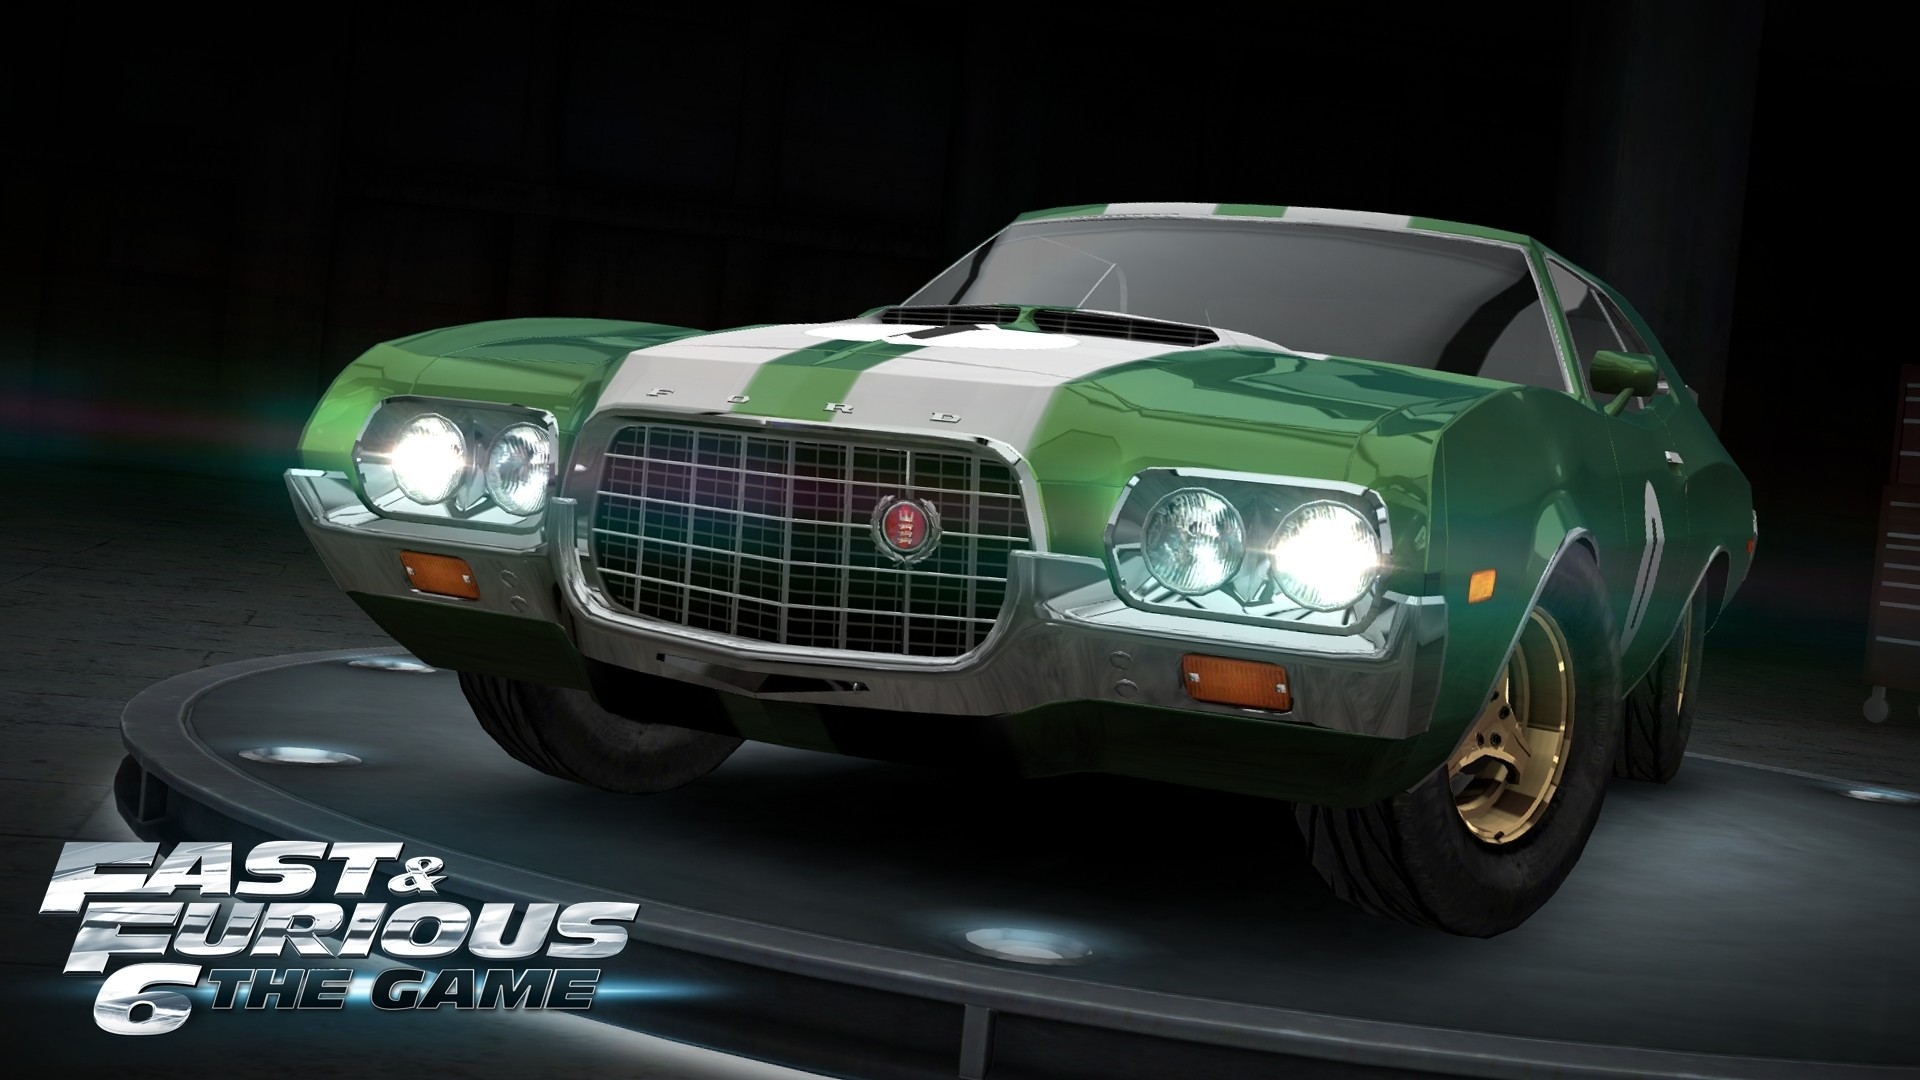 Kabams Fast Furious 6 The Game Breaks Company Record As Its Fastest Growing  Game Of All Time Business Wire